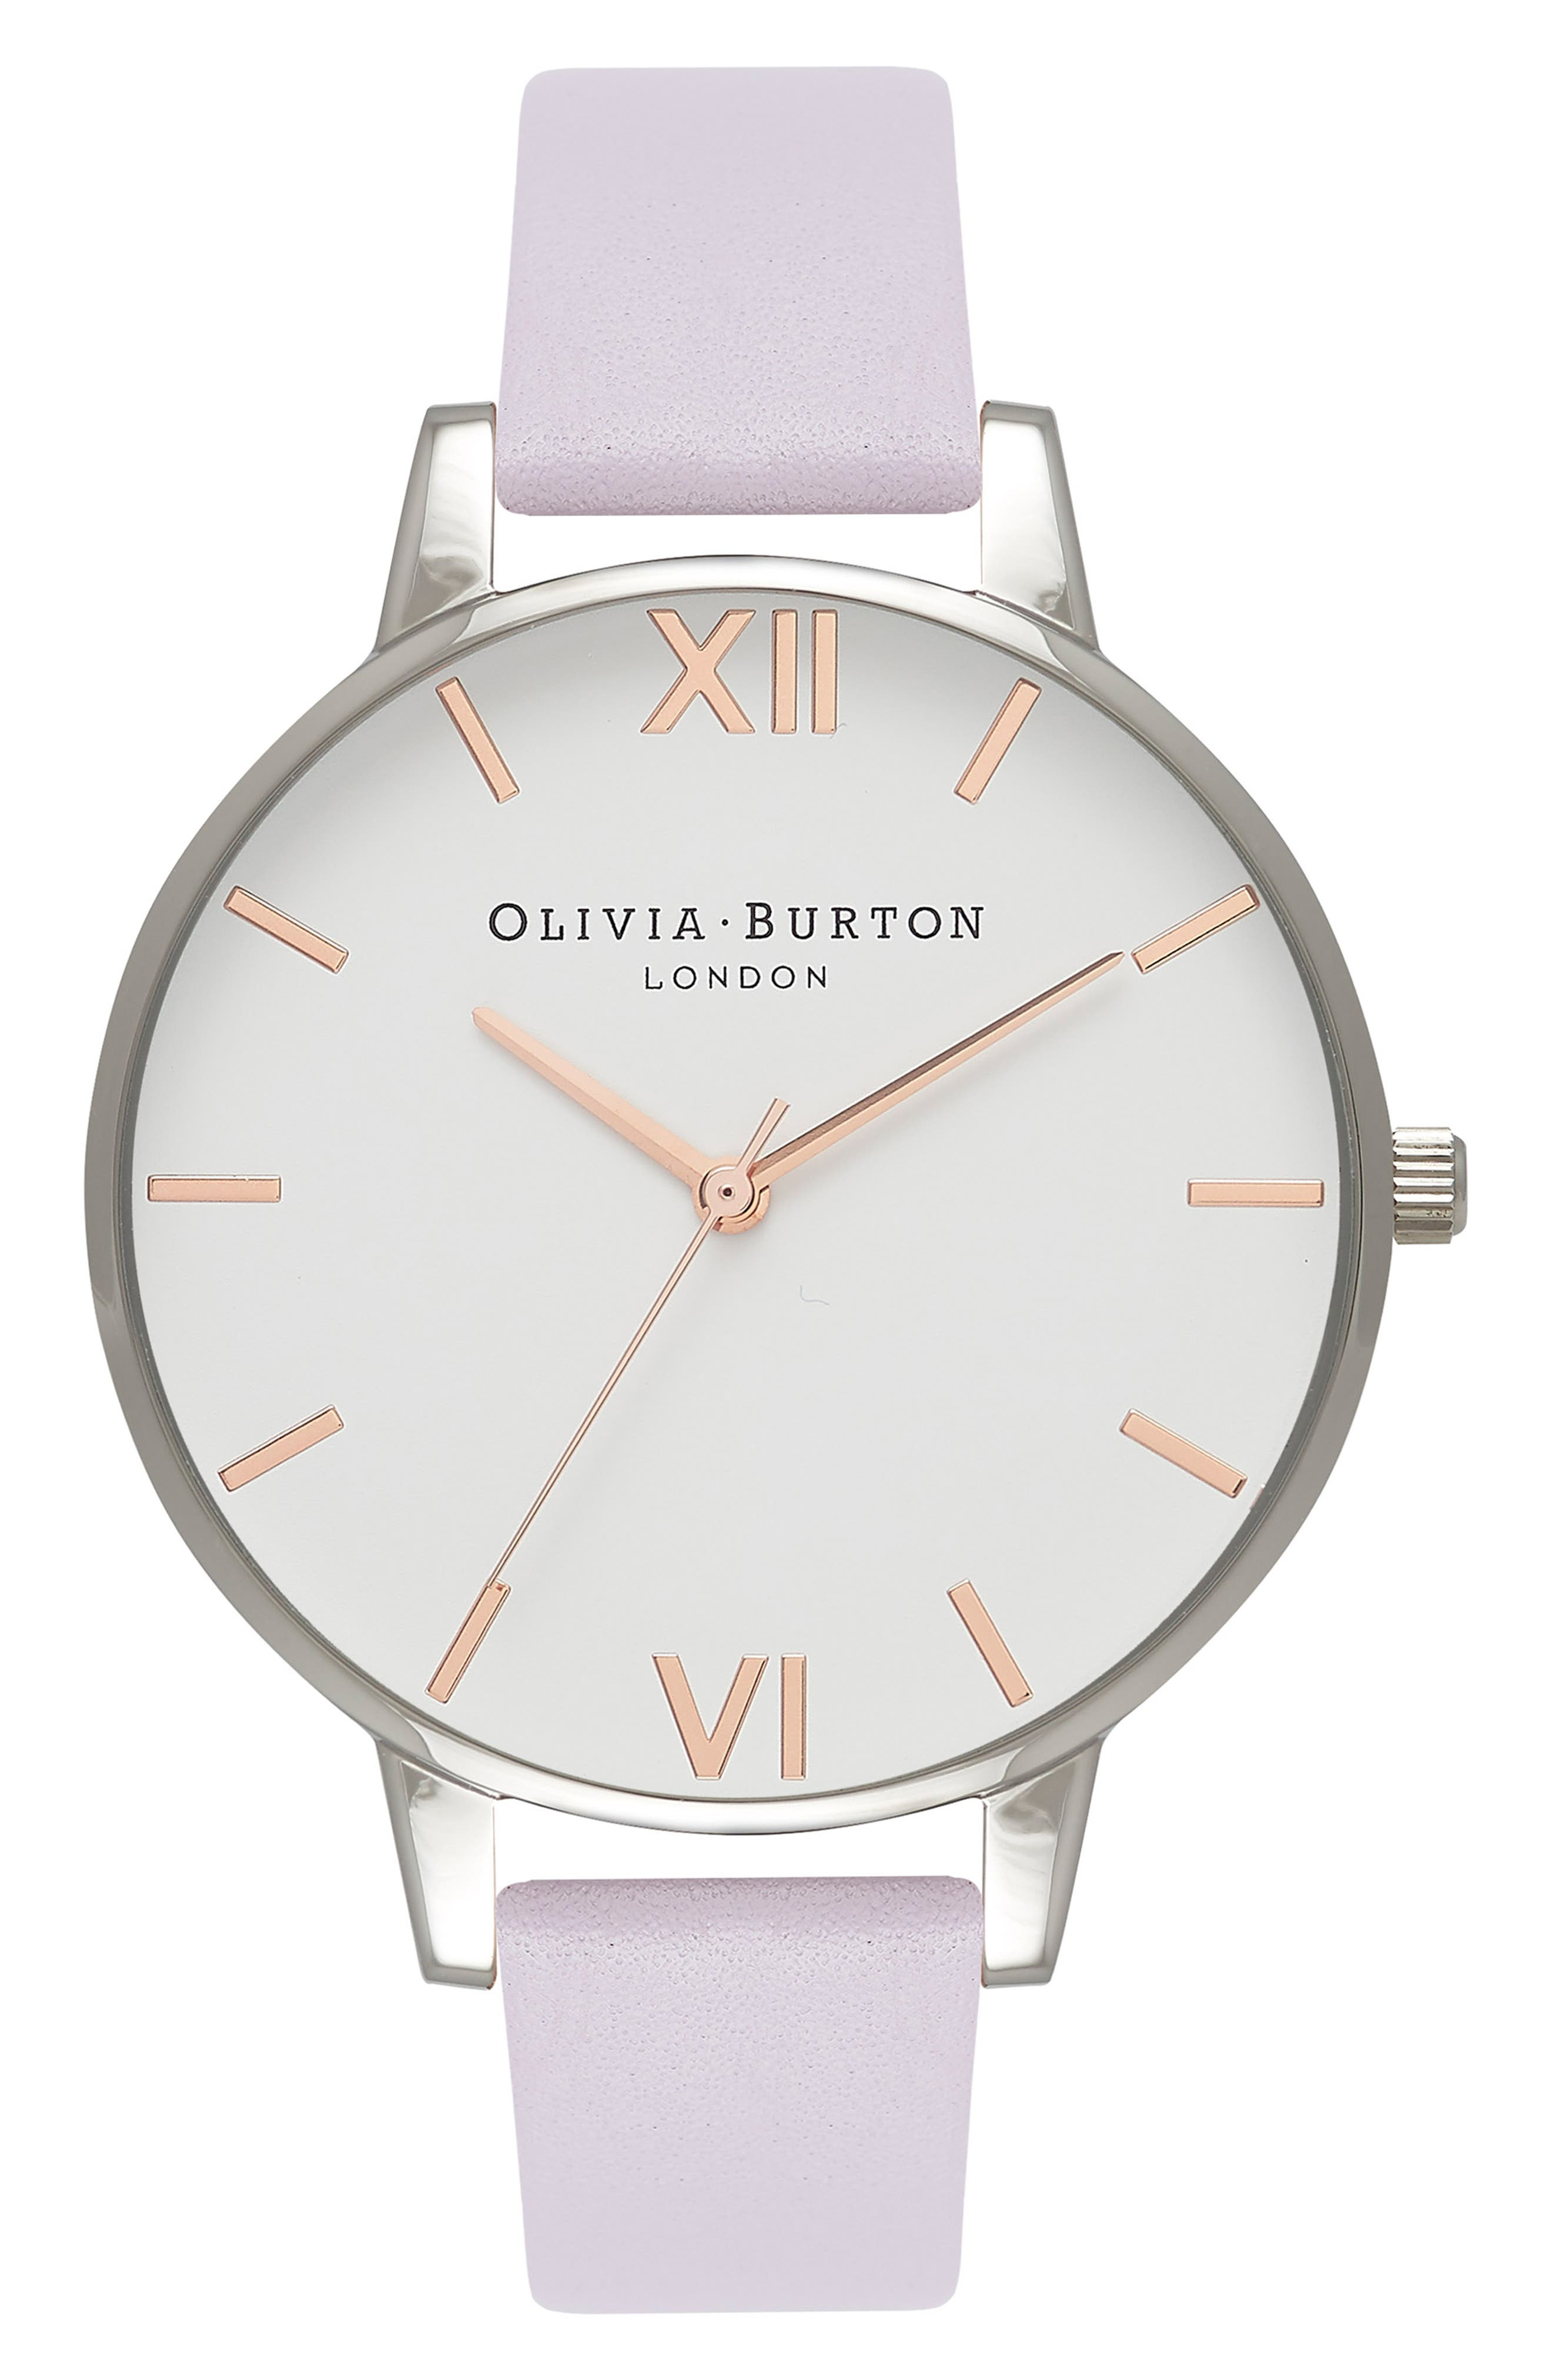 OLIVIA BURTON White Dial Leather Strap Watch, 38mm, Main, color, VIOLET/ WHITE/ SILVER